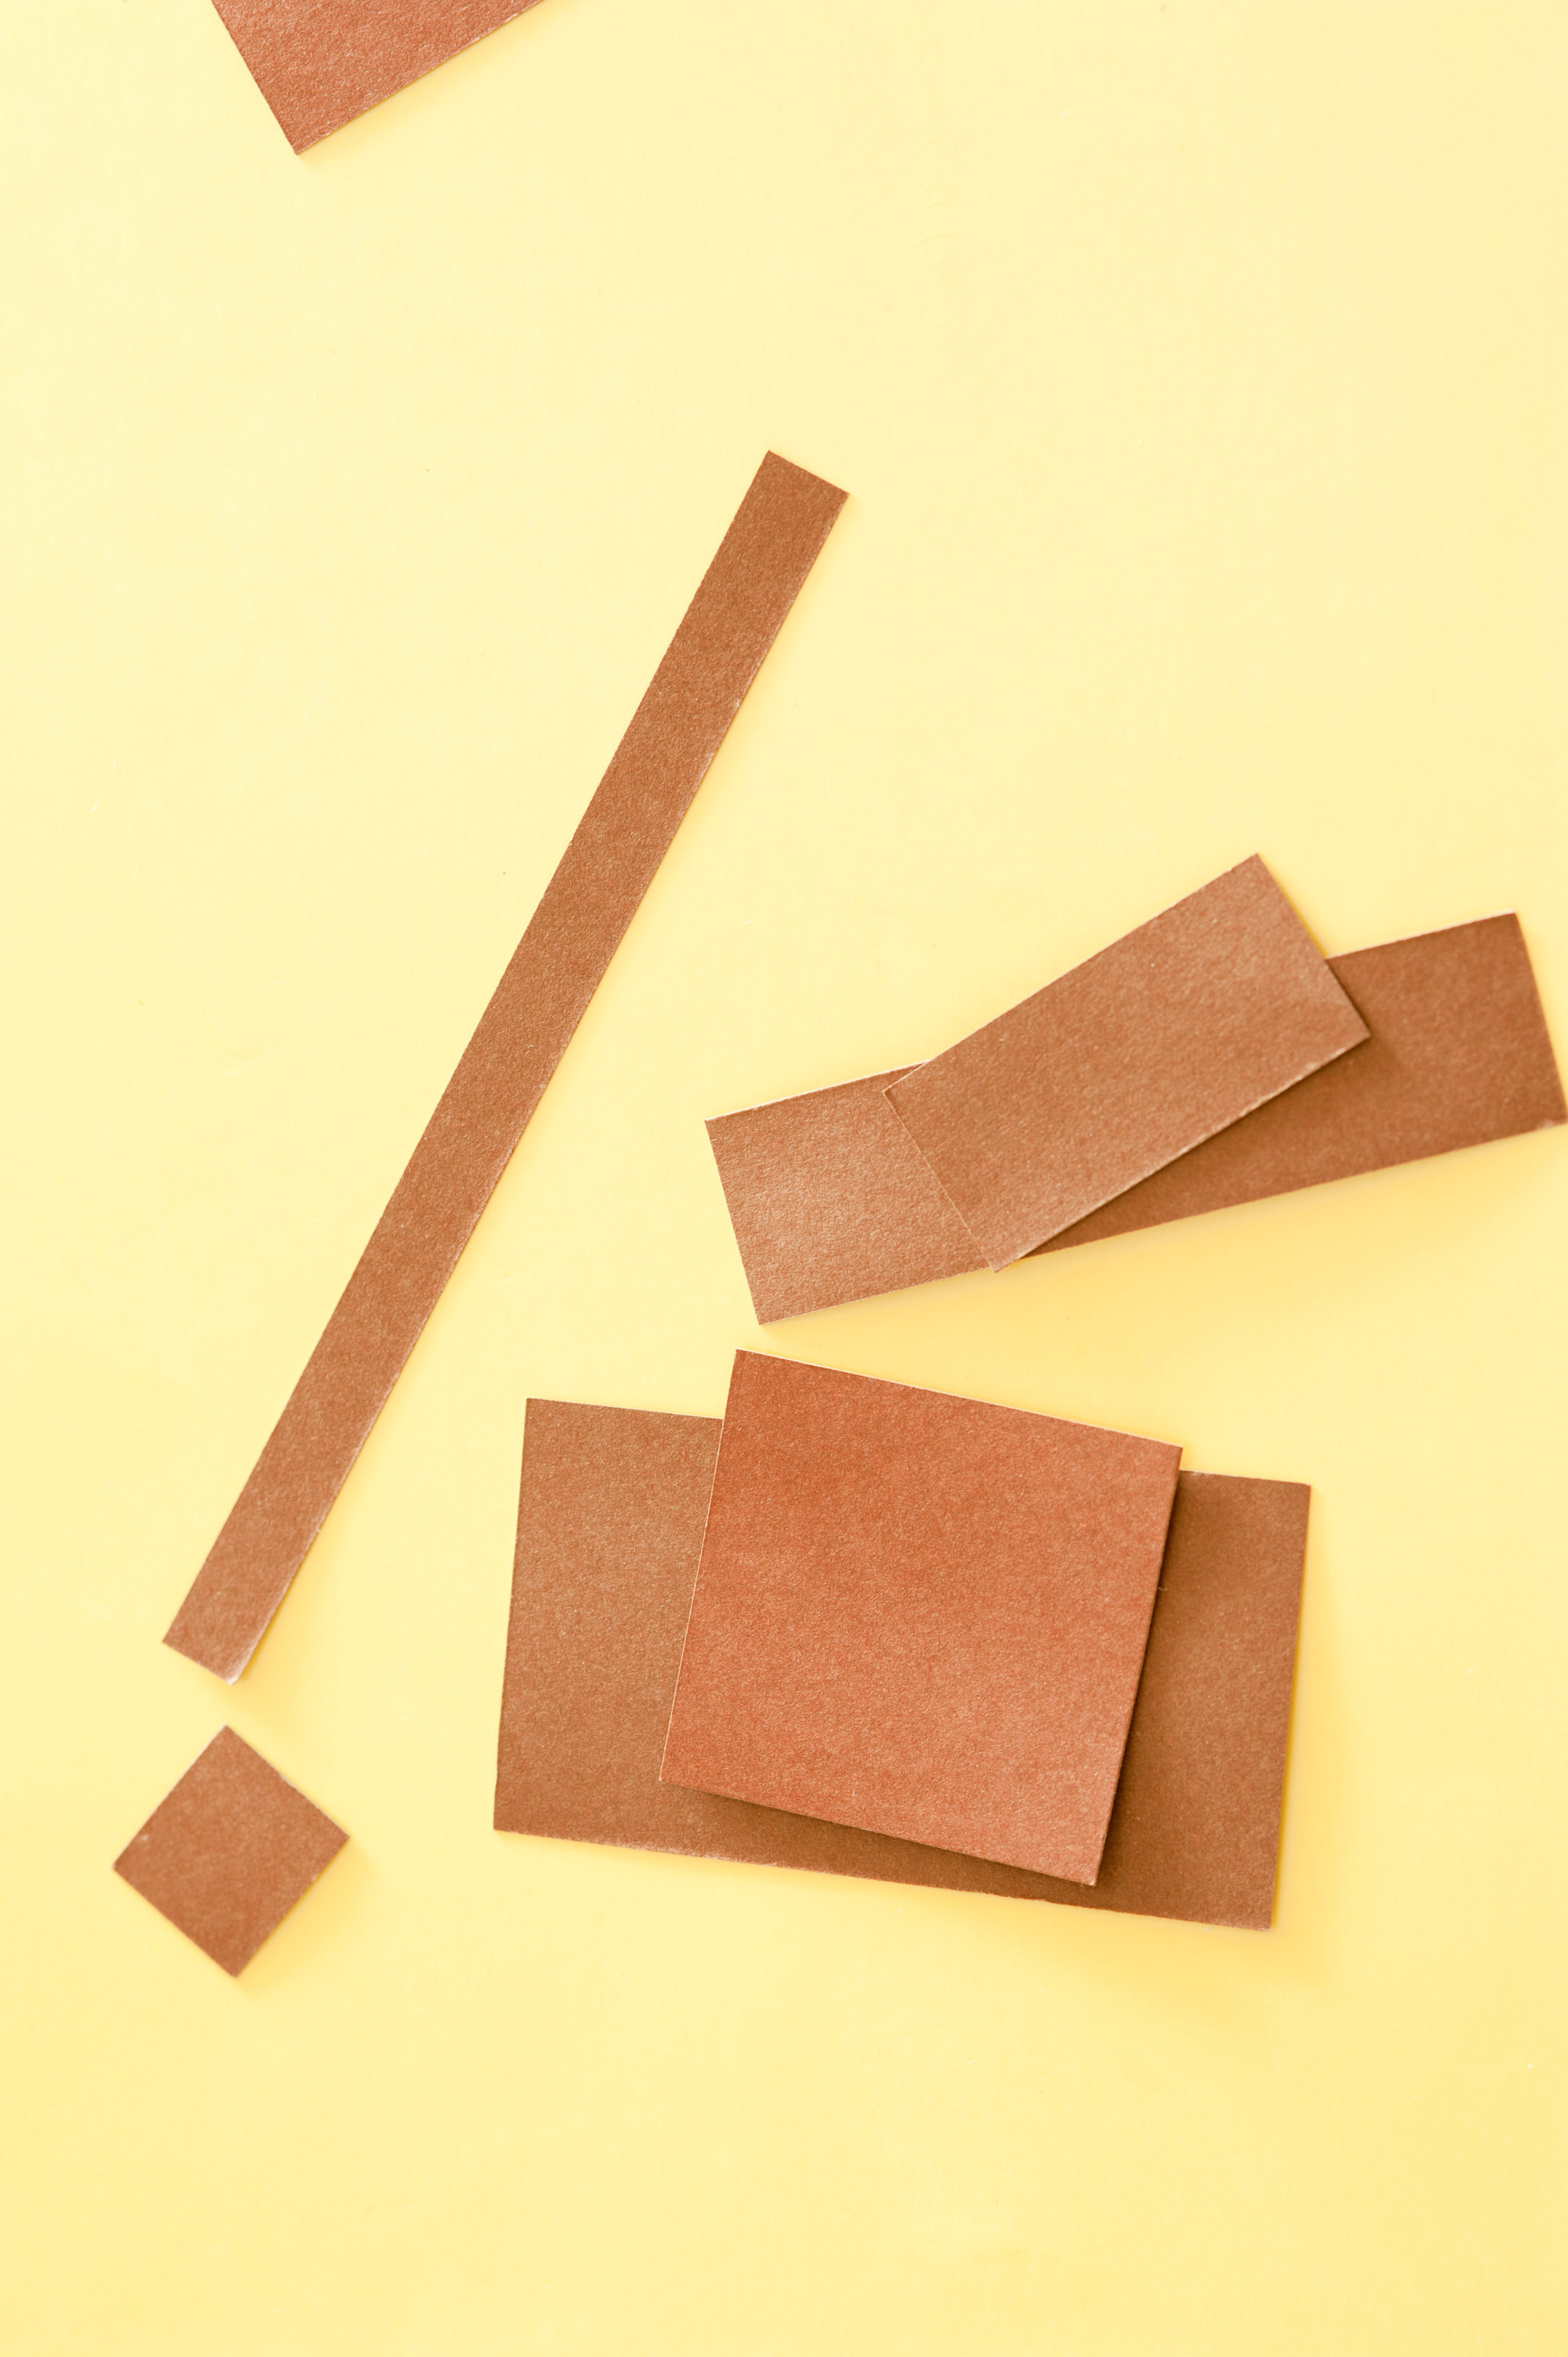 an assortment of overlapped brown paper rectangles on a yellow background